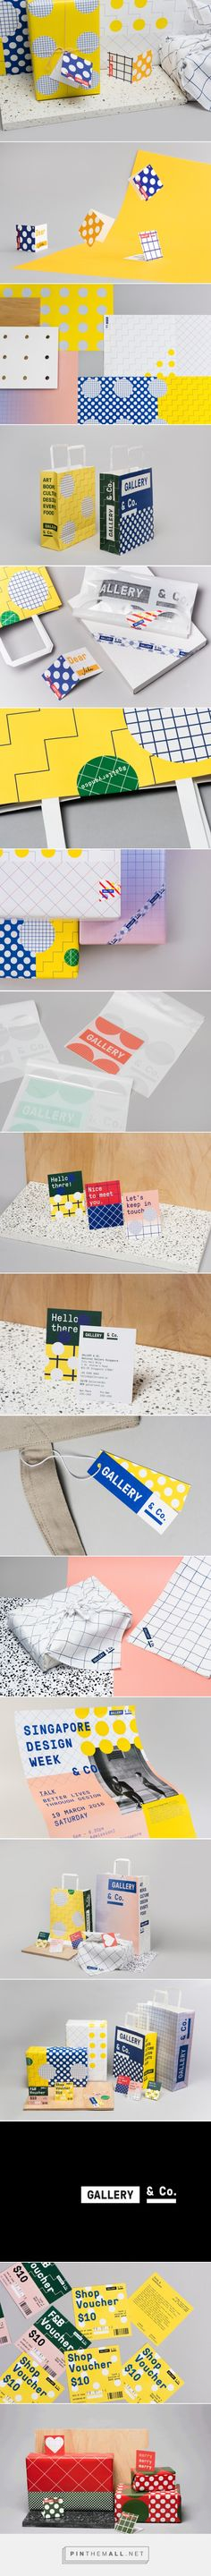 Good design makes me happy: Project Love: Gallery & Co - created via https://pinthemall.net